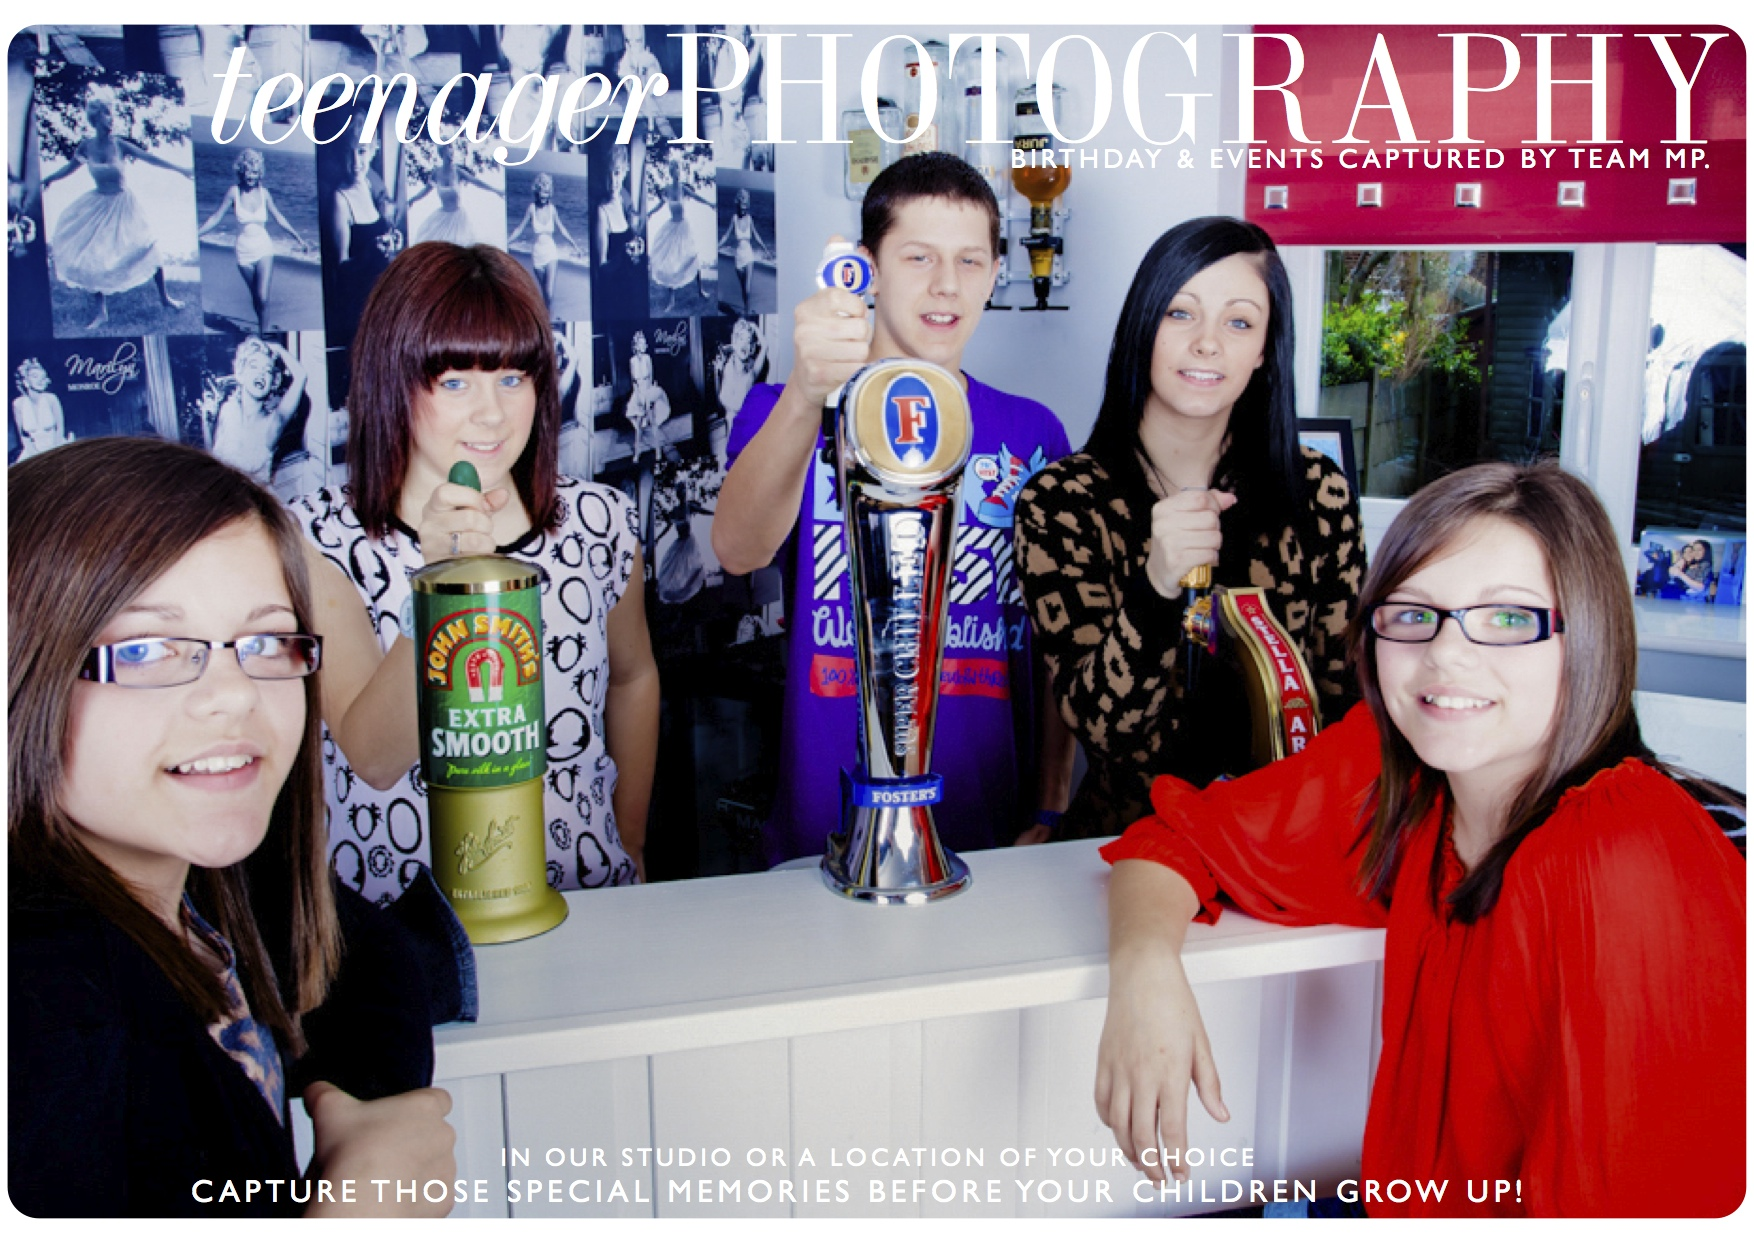 Teenager Photography - Birthday parties and events.